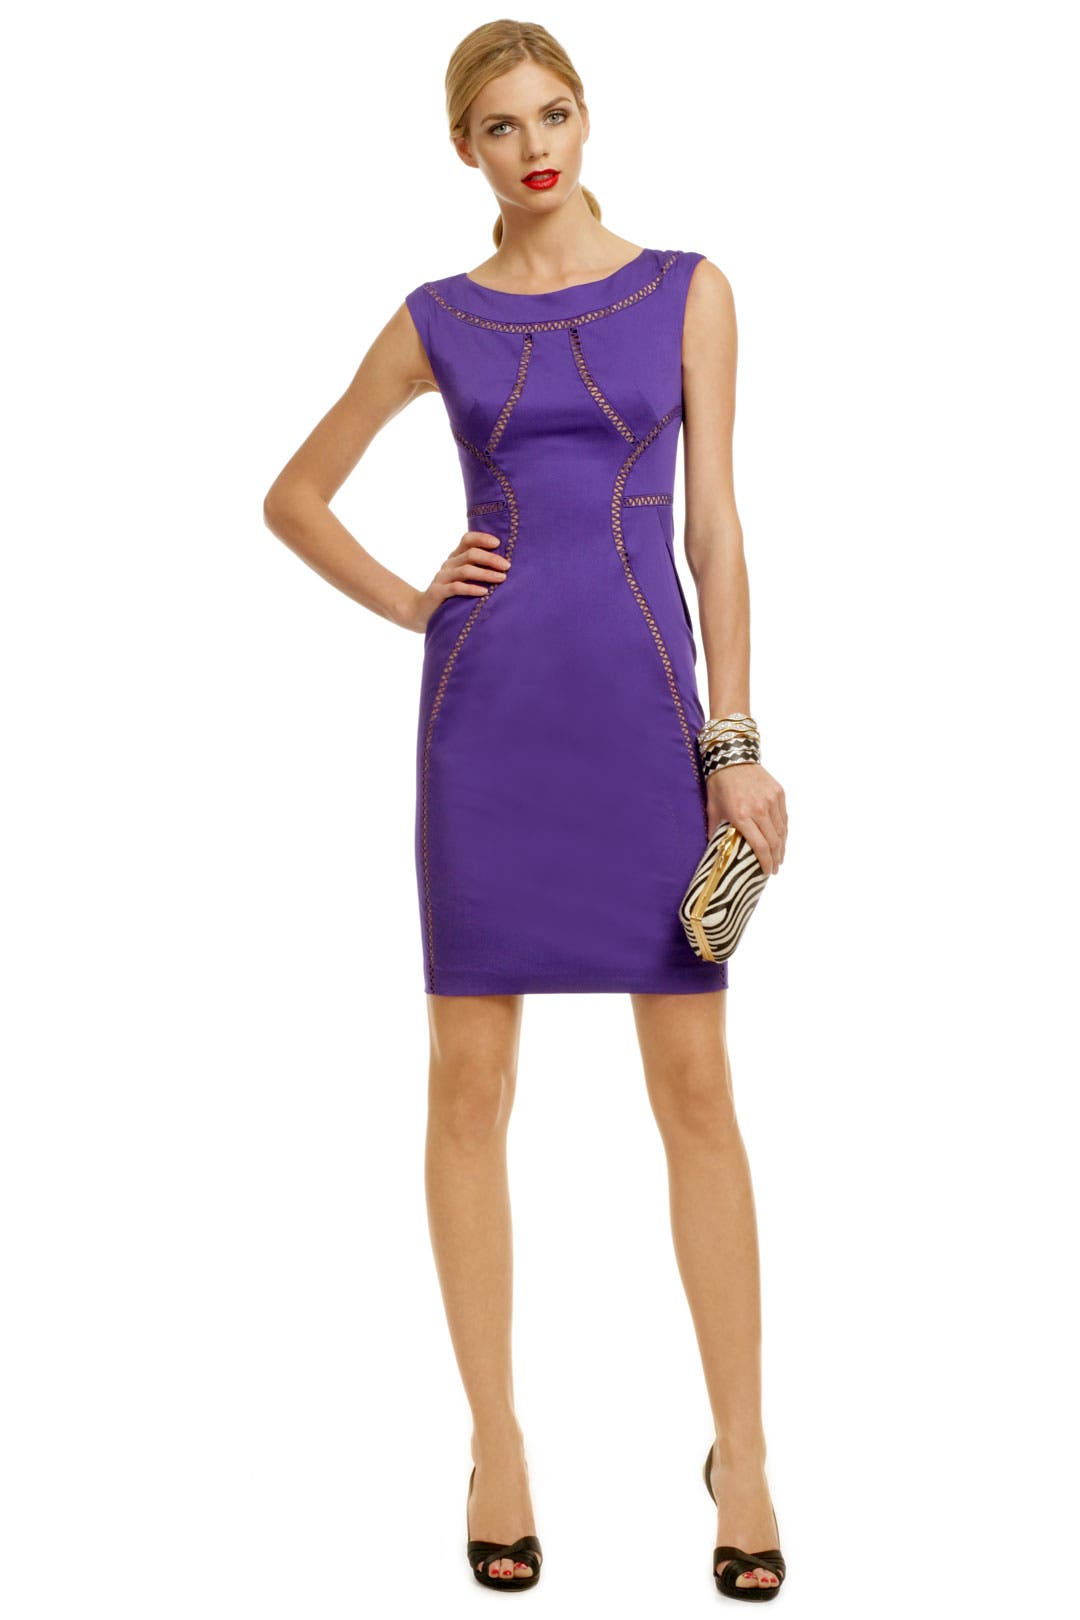 Clinton Sheath by Alberta Ferretti